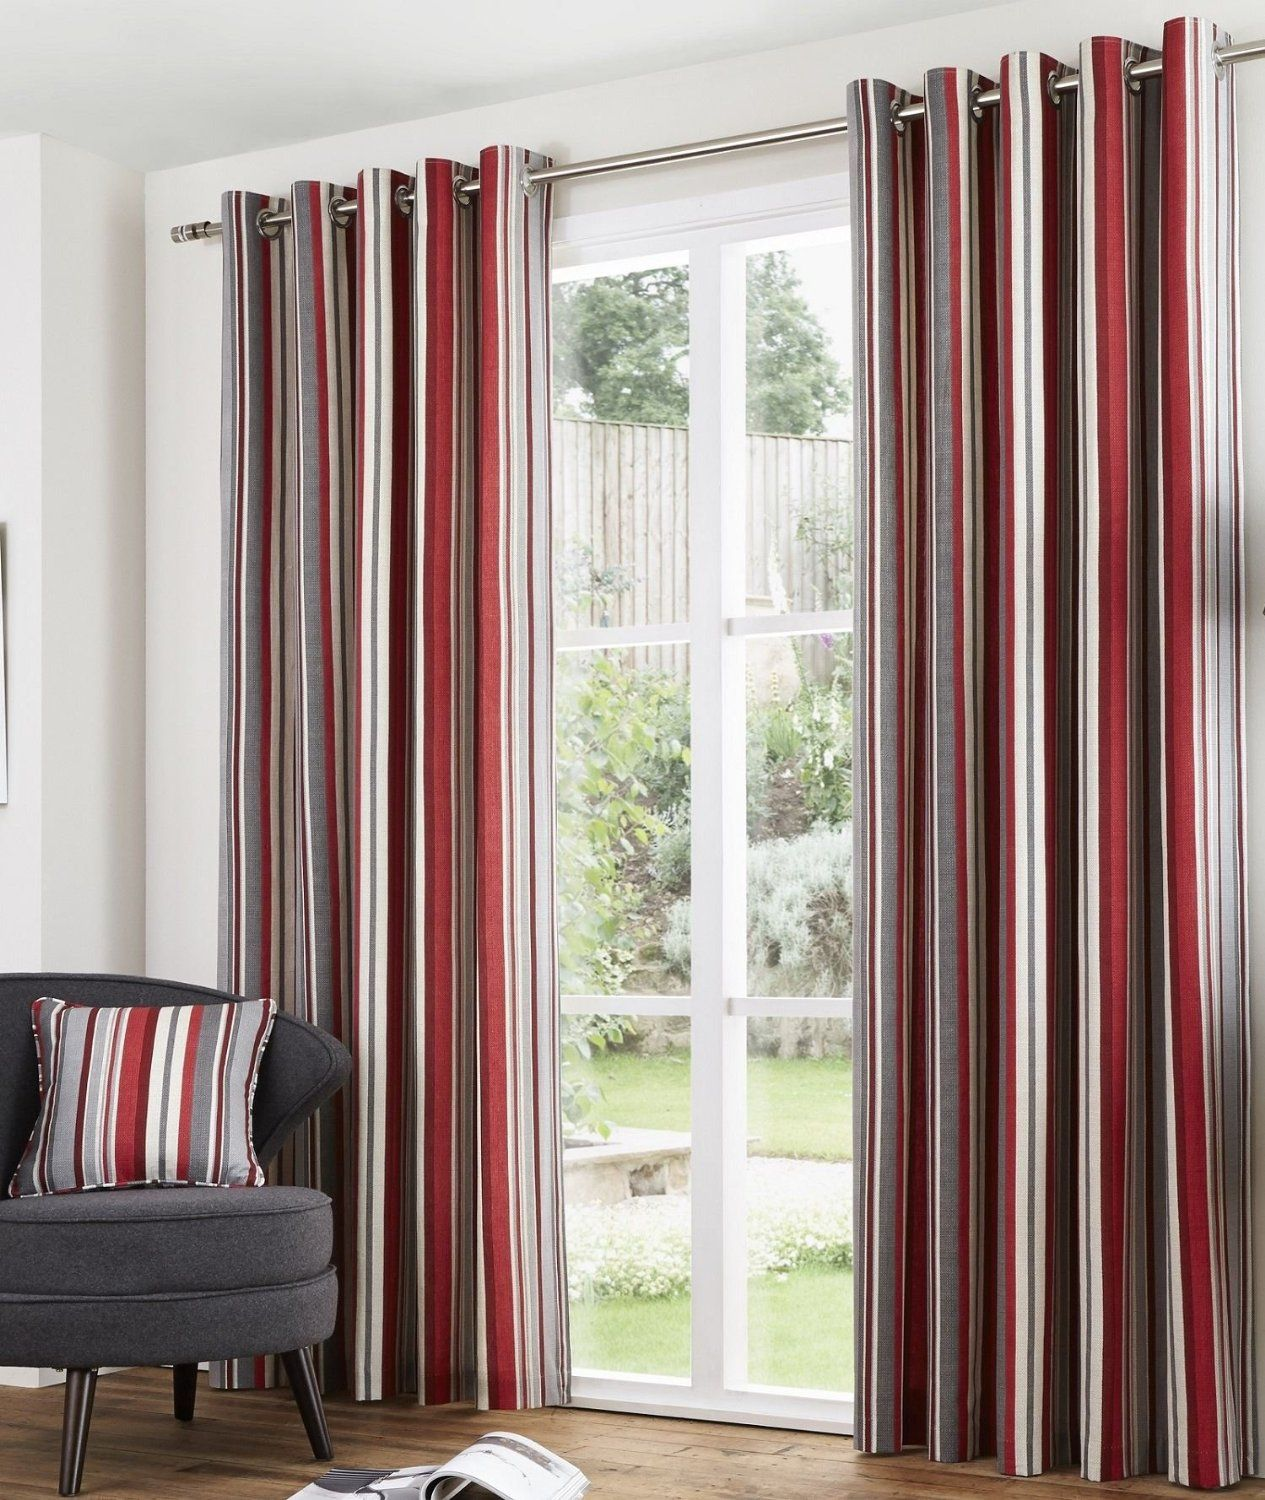 Kelly green velvet curtains - Melody Eyelet Lined Curtains 66 X 72 Stripe Red Burgundy Cream Grey Ready Made